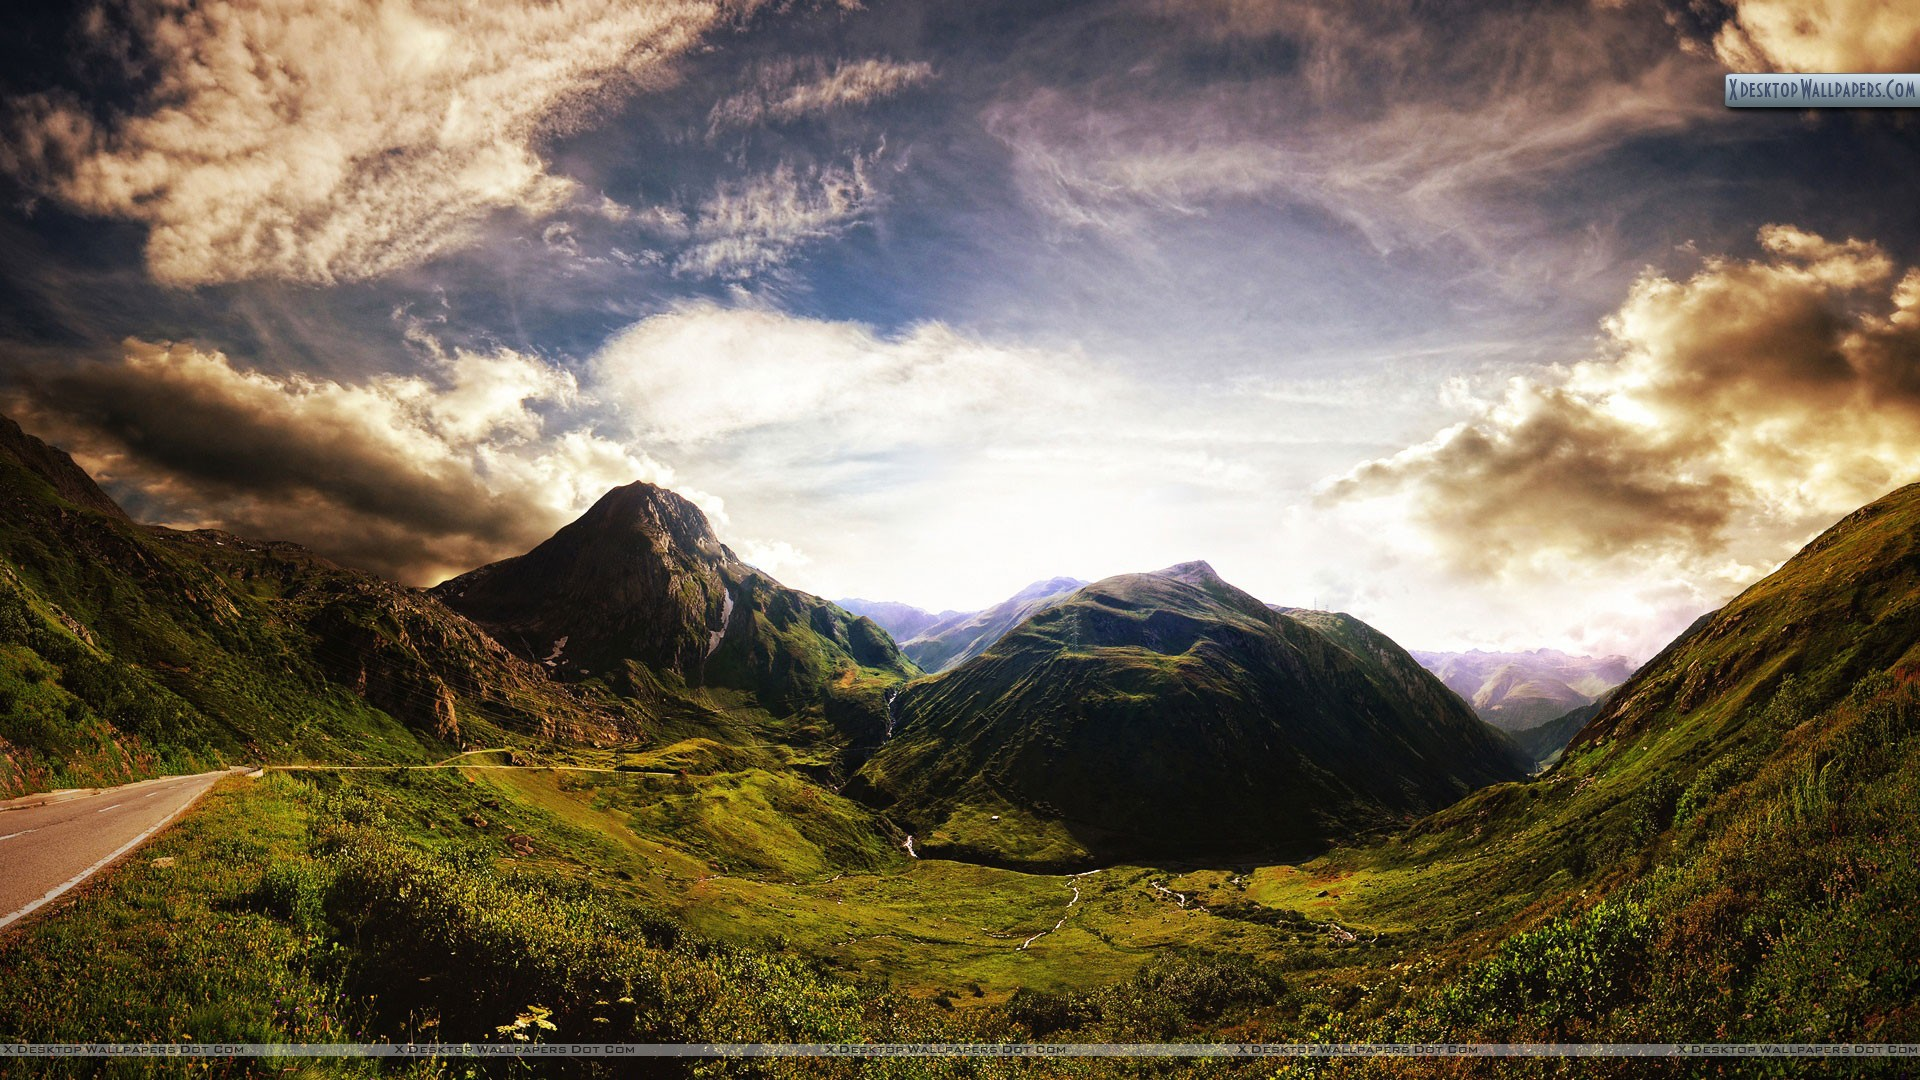 Old mountains scenery wallpaper old mountains scenery voltagebd Images